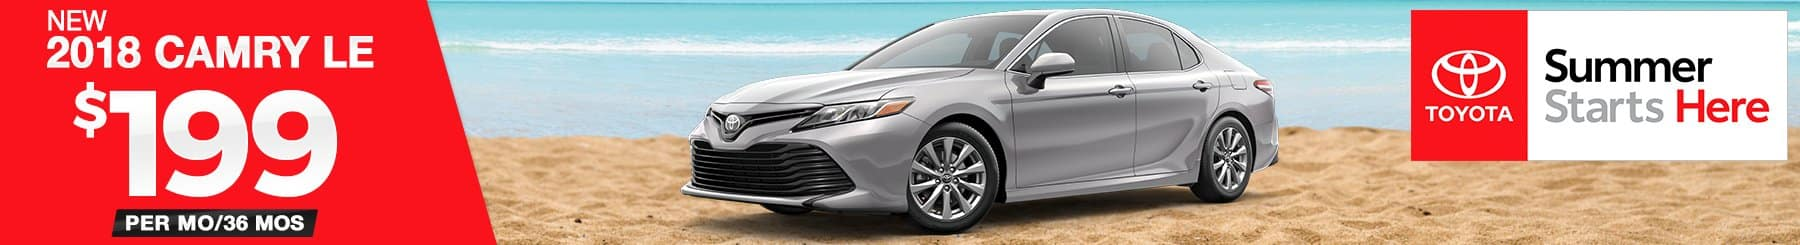 Toyota-Camry-Lease-Special